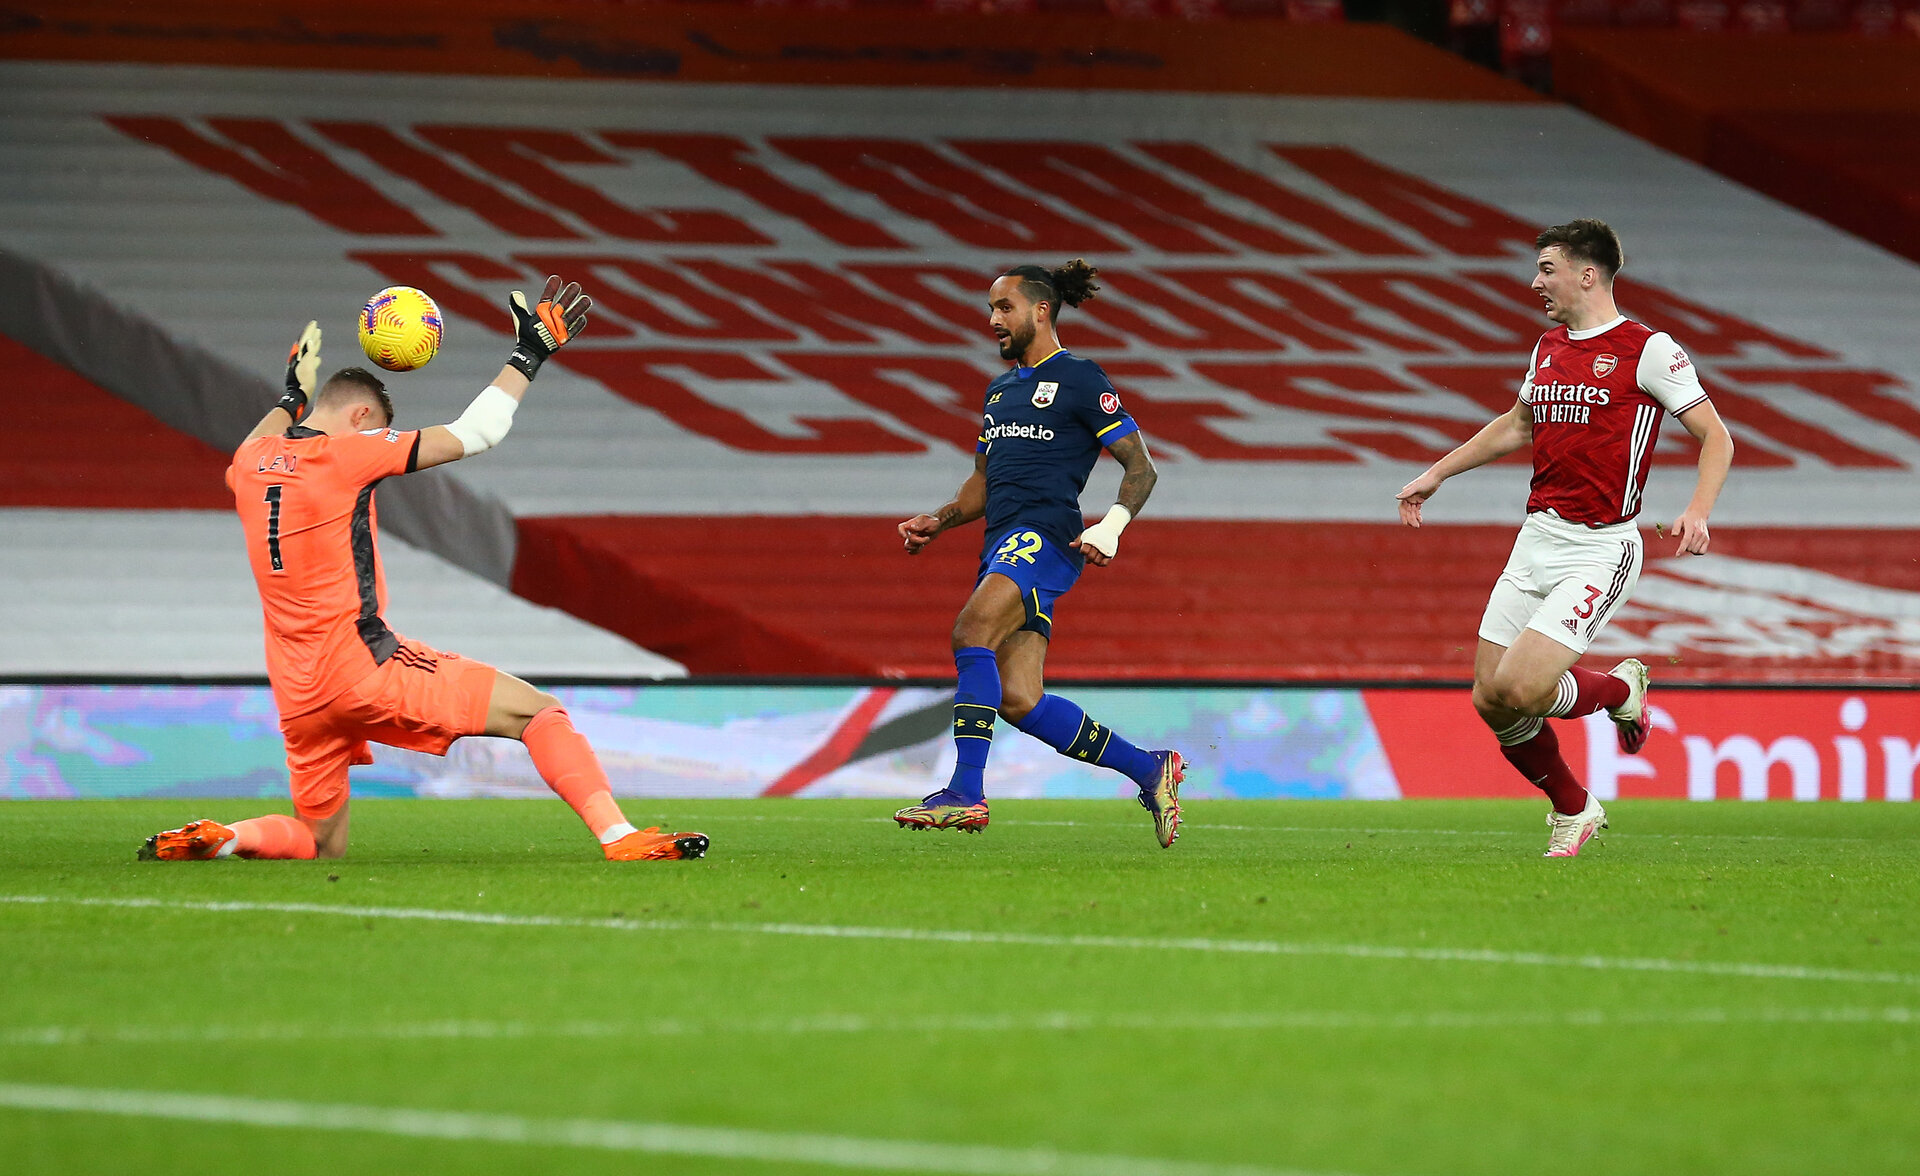 LONDON, ENGLAND - DECEMBER 16: Theo Walcott of Southampton opens the scoring during the Premier League match between Arsenal and Southampton at Emirates Stadium on December 16, 2020 in London, England. The match will be played without fans, behind closed doors as a Covid-19 precaution. (Photo by Matt Watson/Southampton FC via Getty Images)